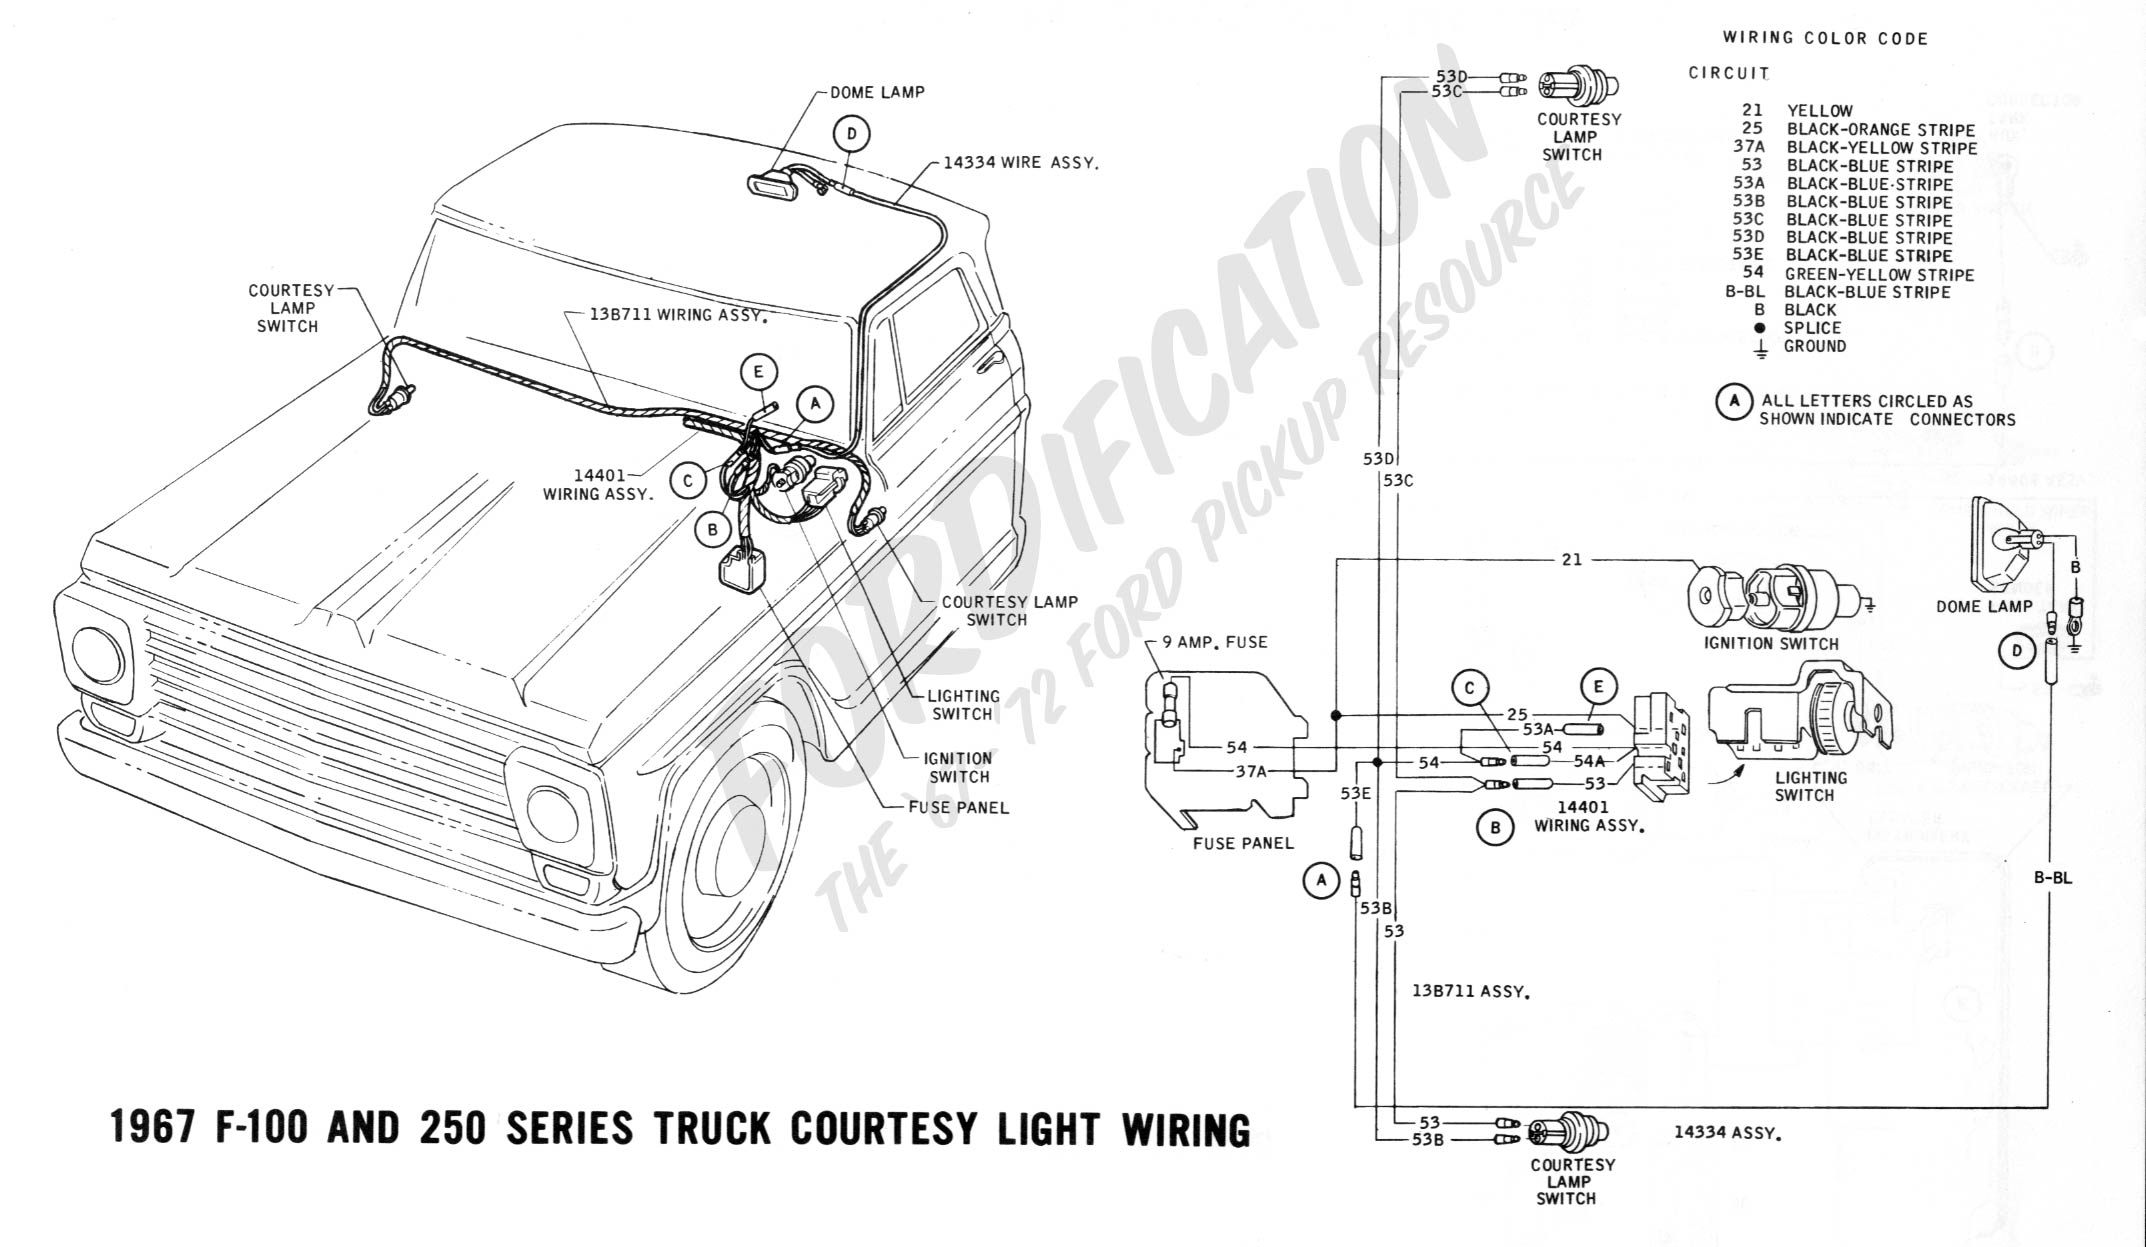 wiring 1967courtesylight 69 f100 wiring diagram 1973 ford f100 wiring diagram \u2022 wiring Ford Truck Wiring Diagrams at crackthecode.co